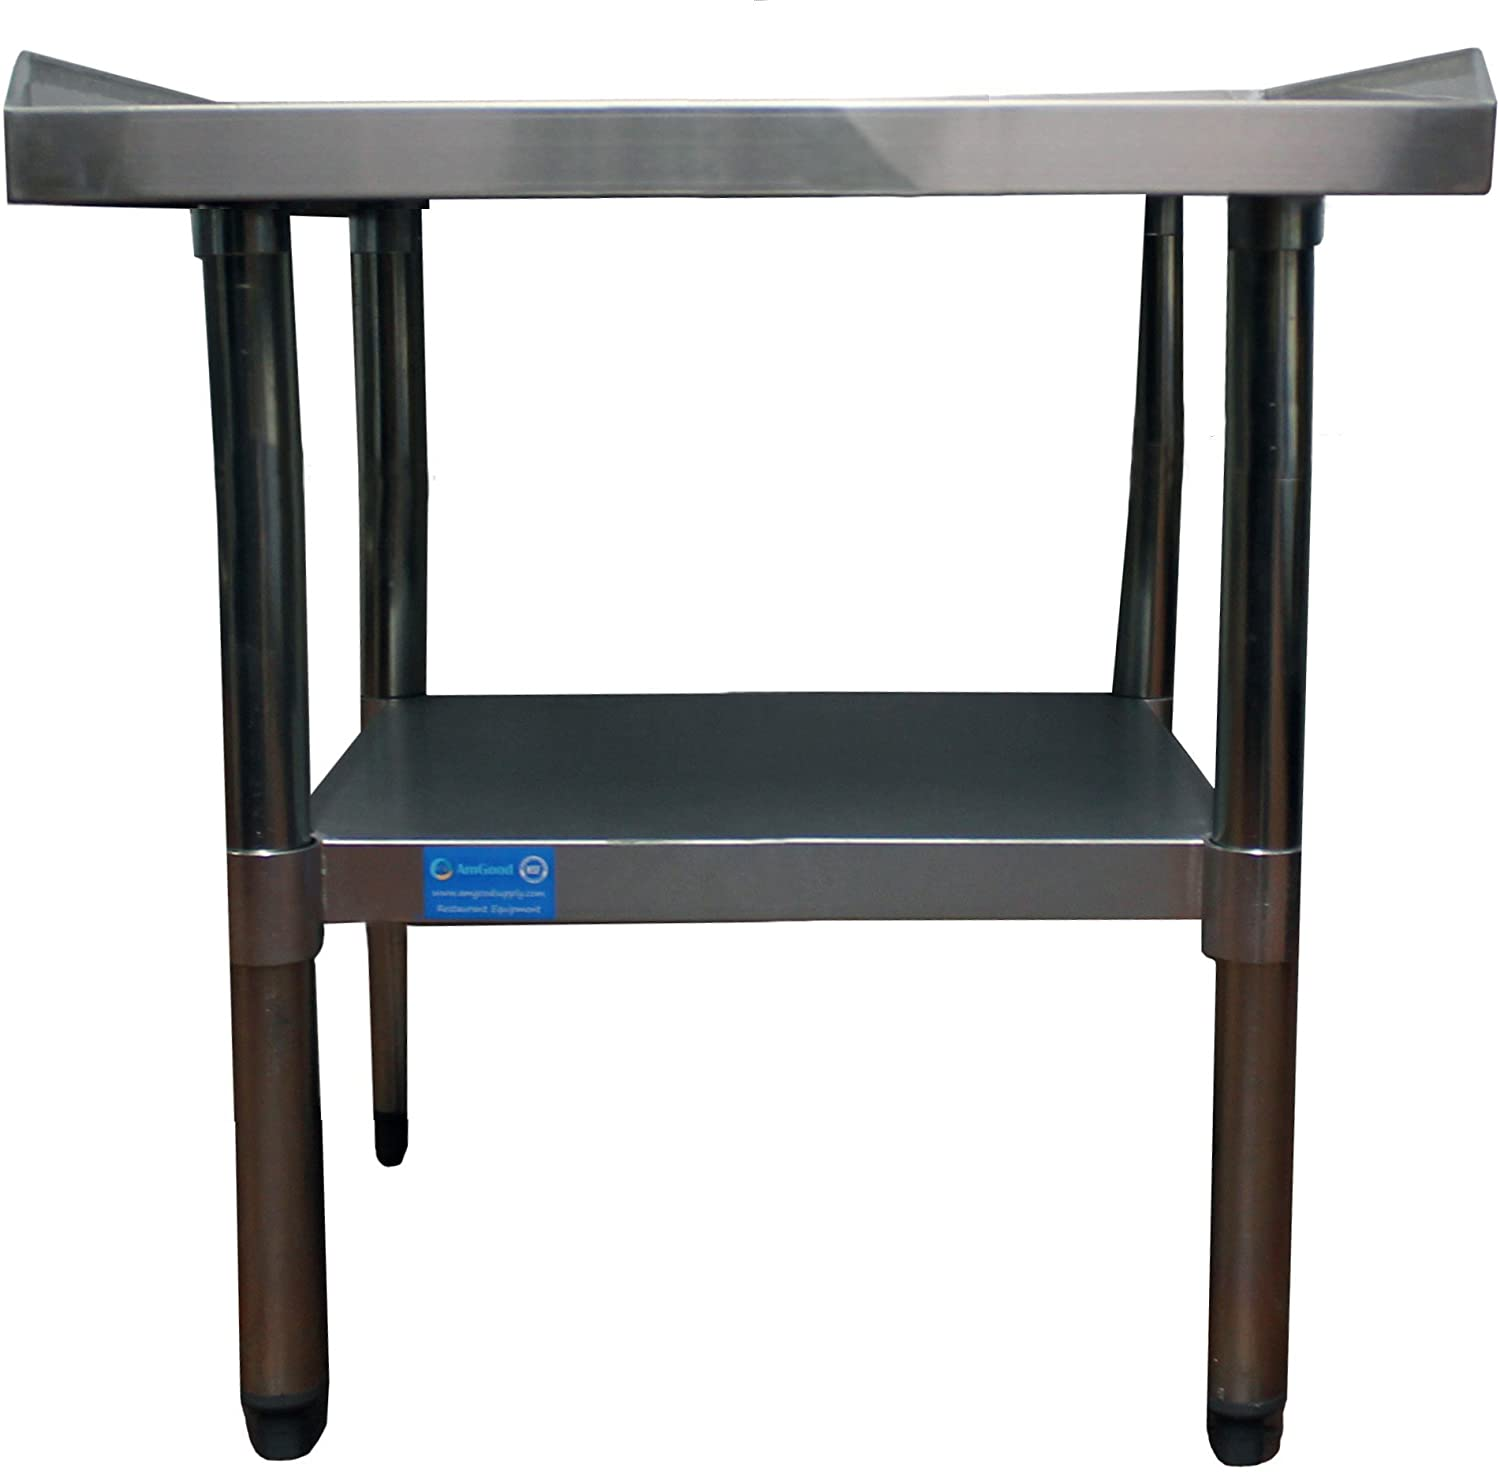 AmGood Stainless Steel Equipment Stand - Heavy Duty, Commercial Grade, with Undershelf, NSF Certified (24 Width x 36 Length)